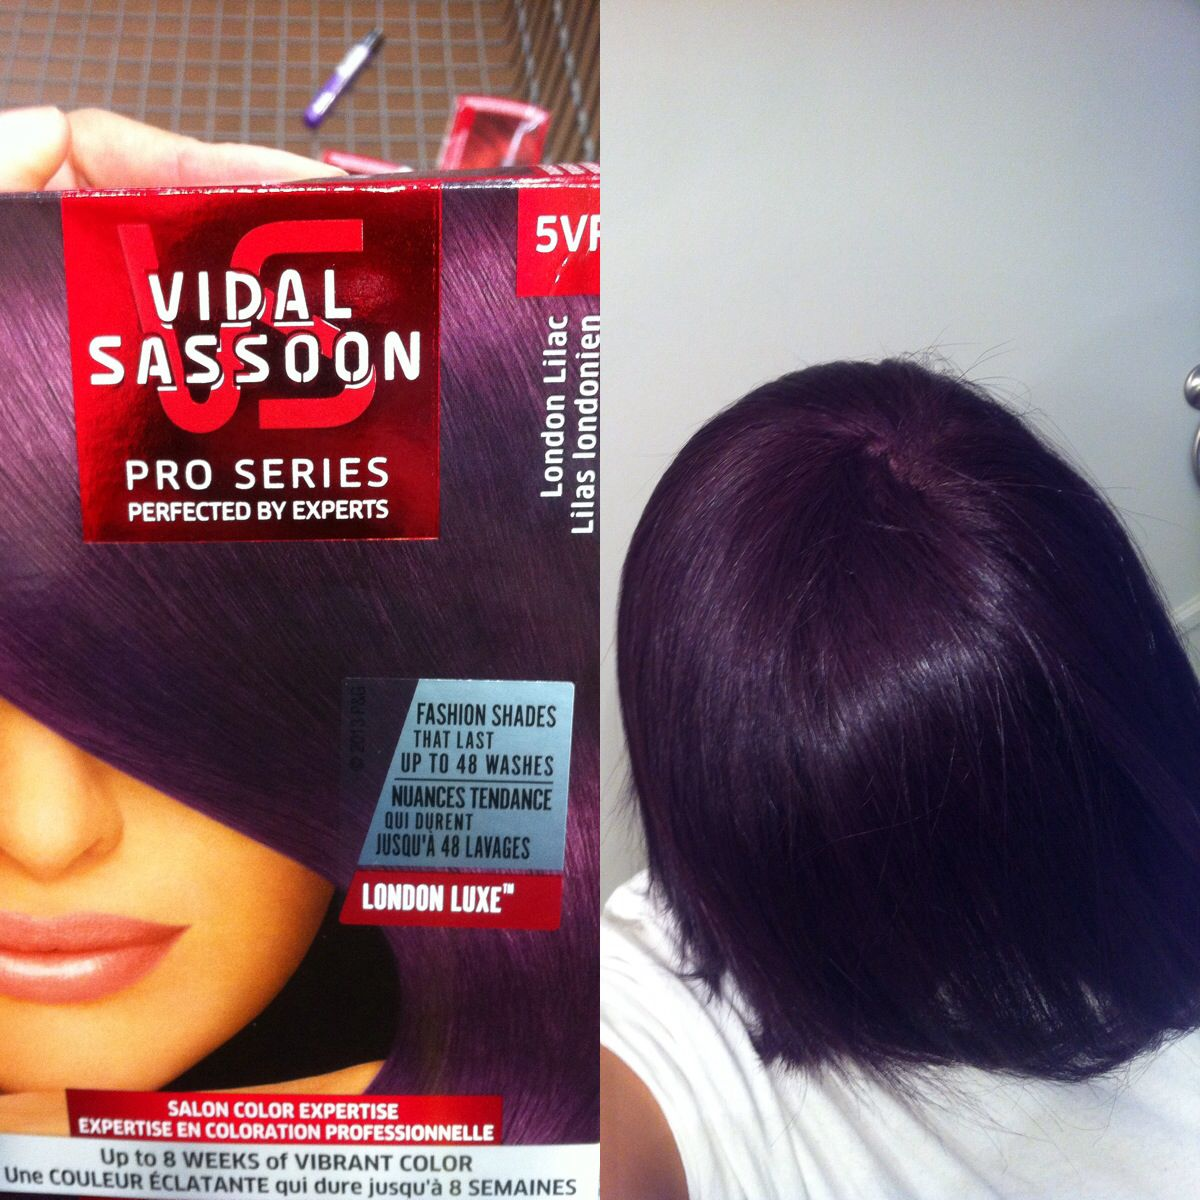 Lilac Hair Color Vidal Sassoon London